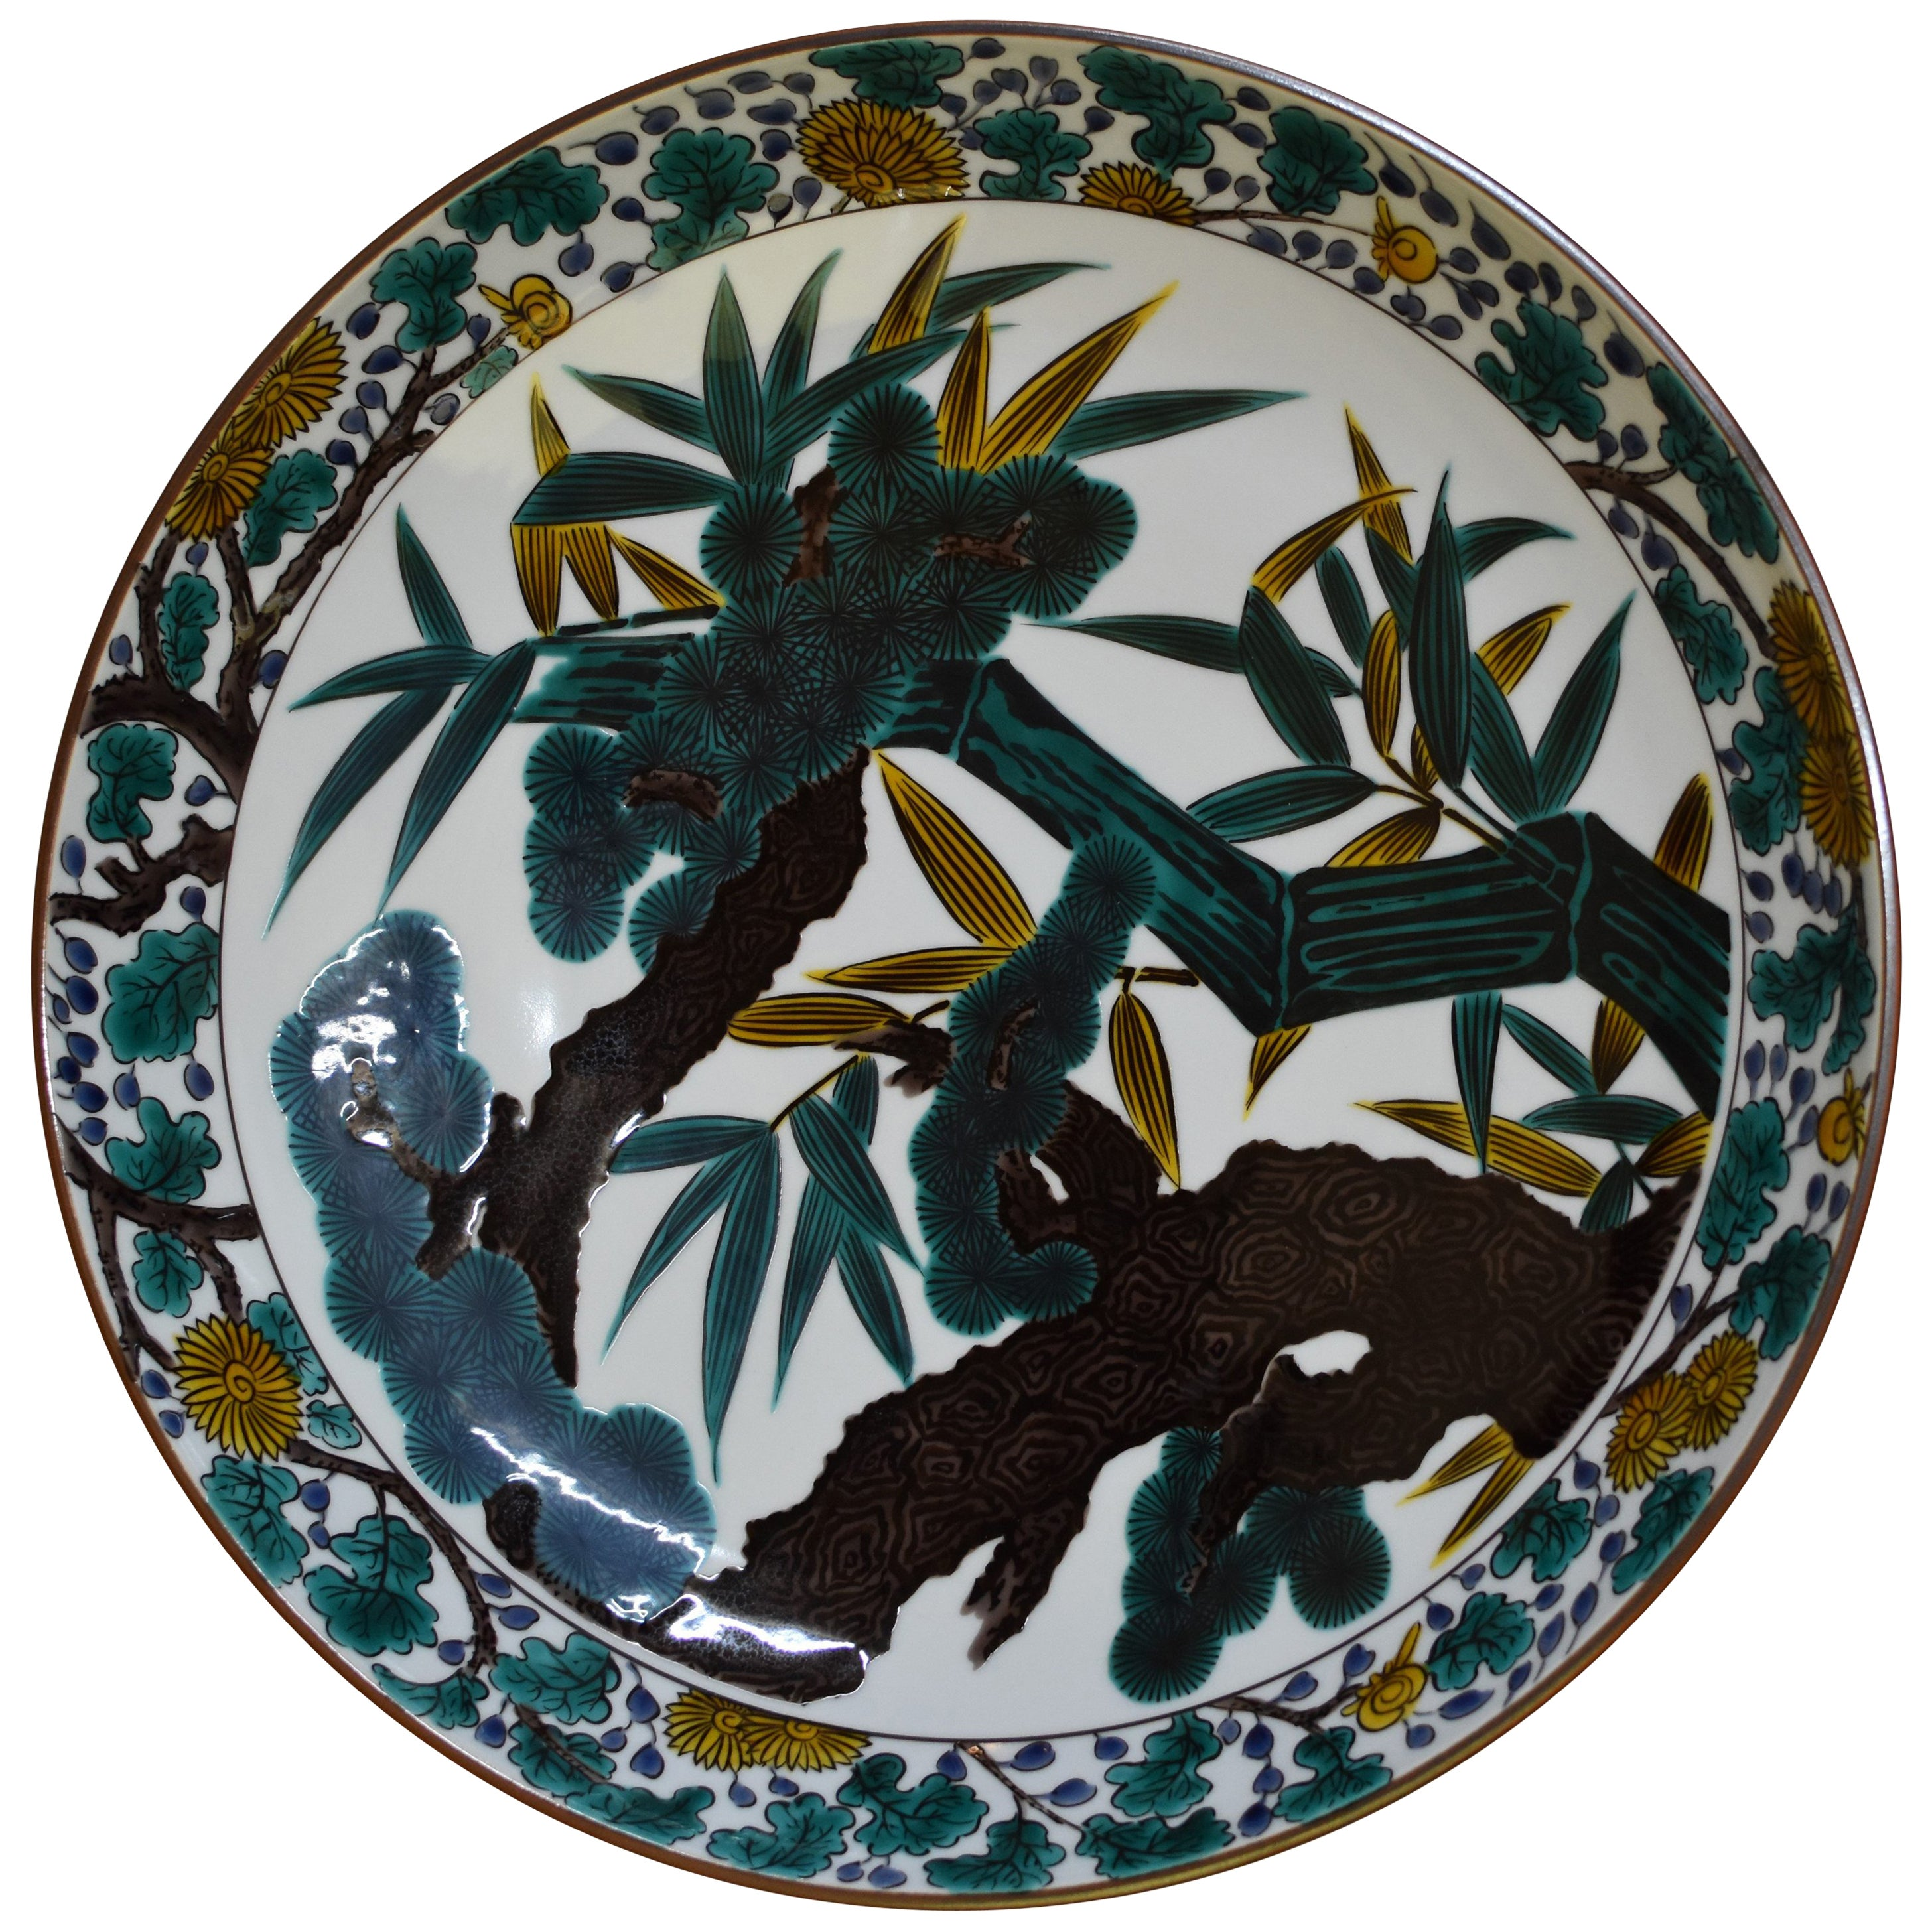 Japanese Green Porcelain Charger by Contemporary Master Artist